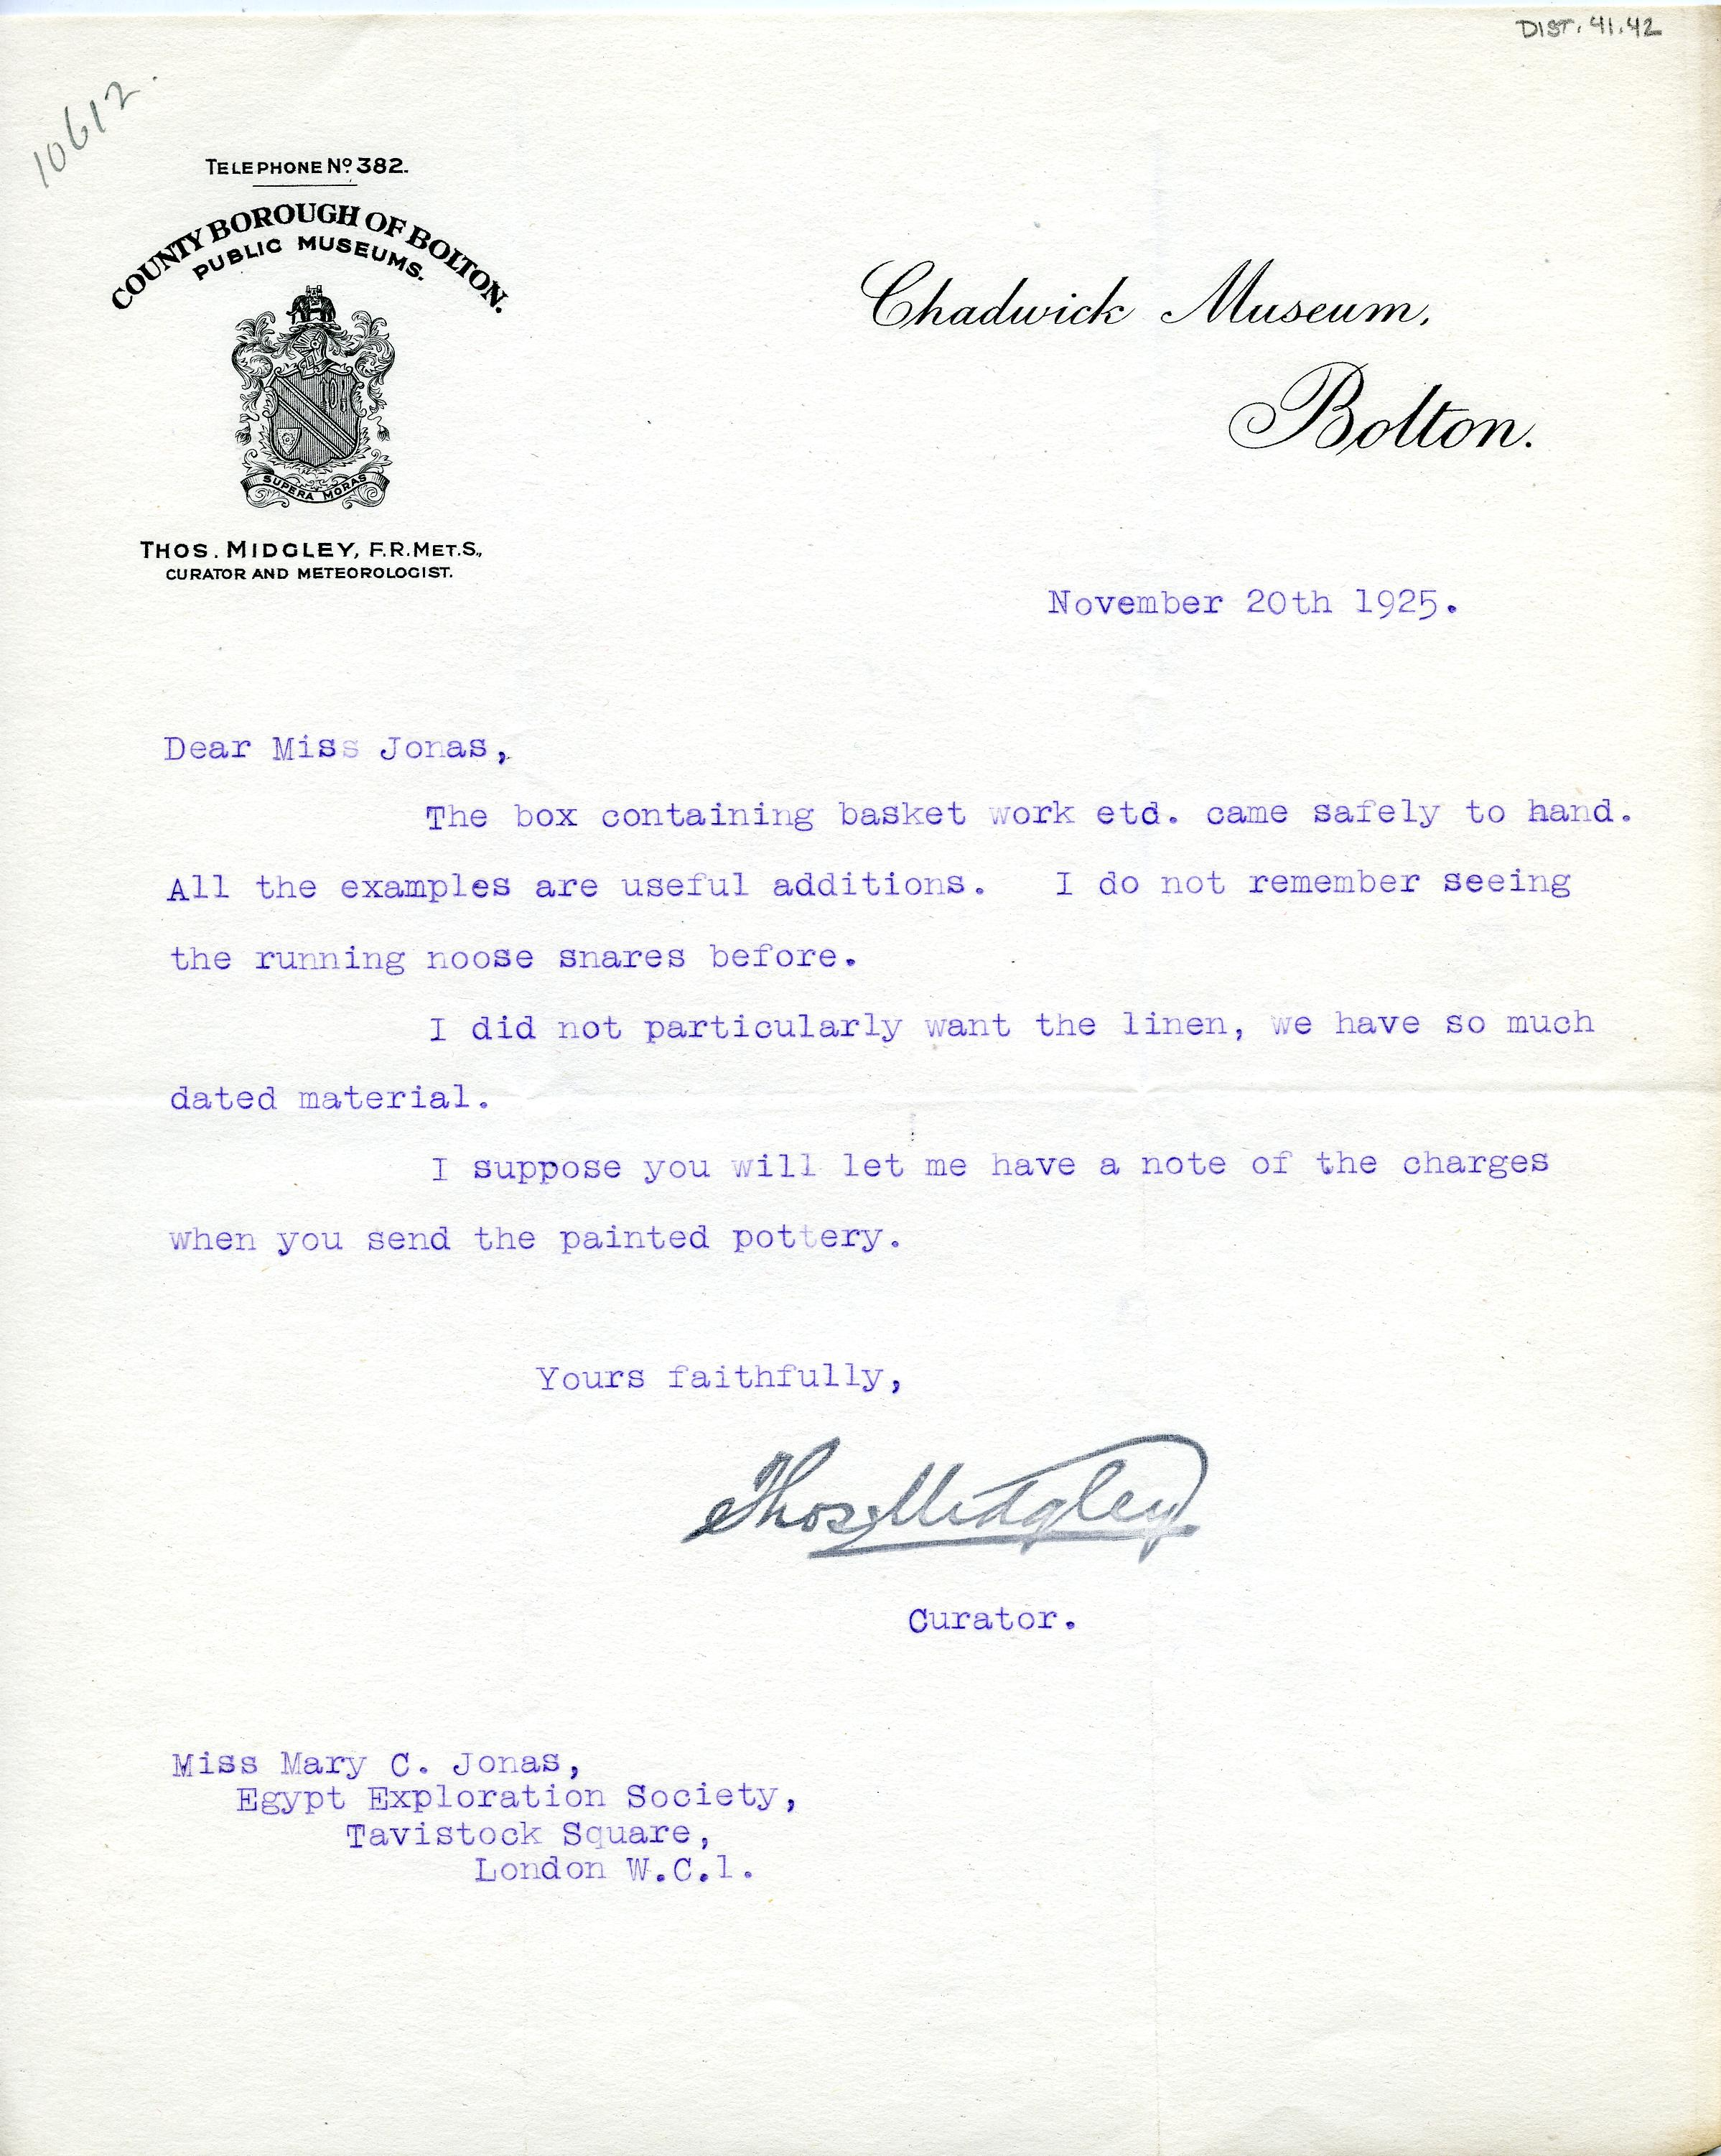 1922-76 Miscellaneous correspondence with museums DIST.41.42